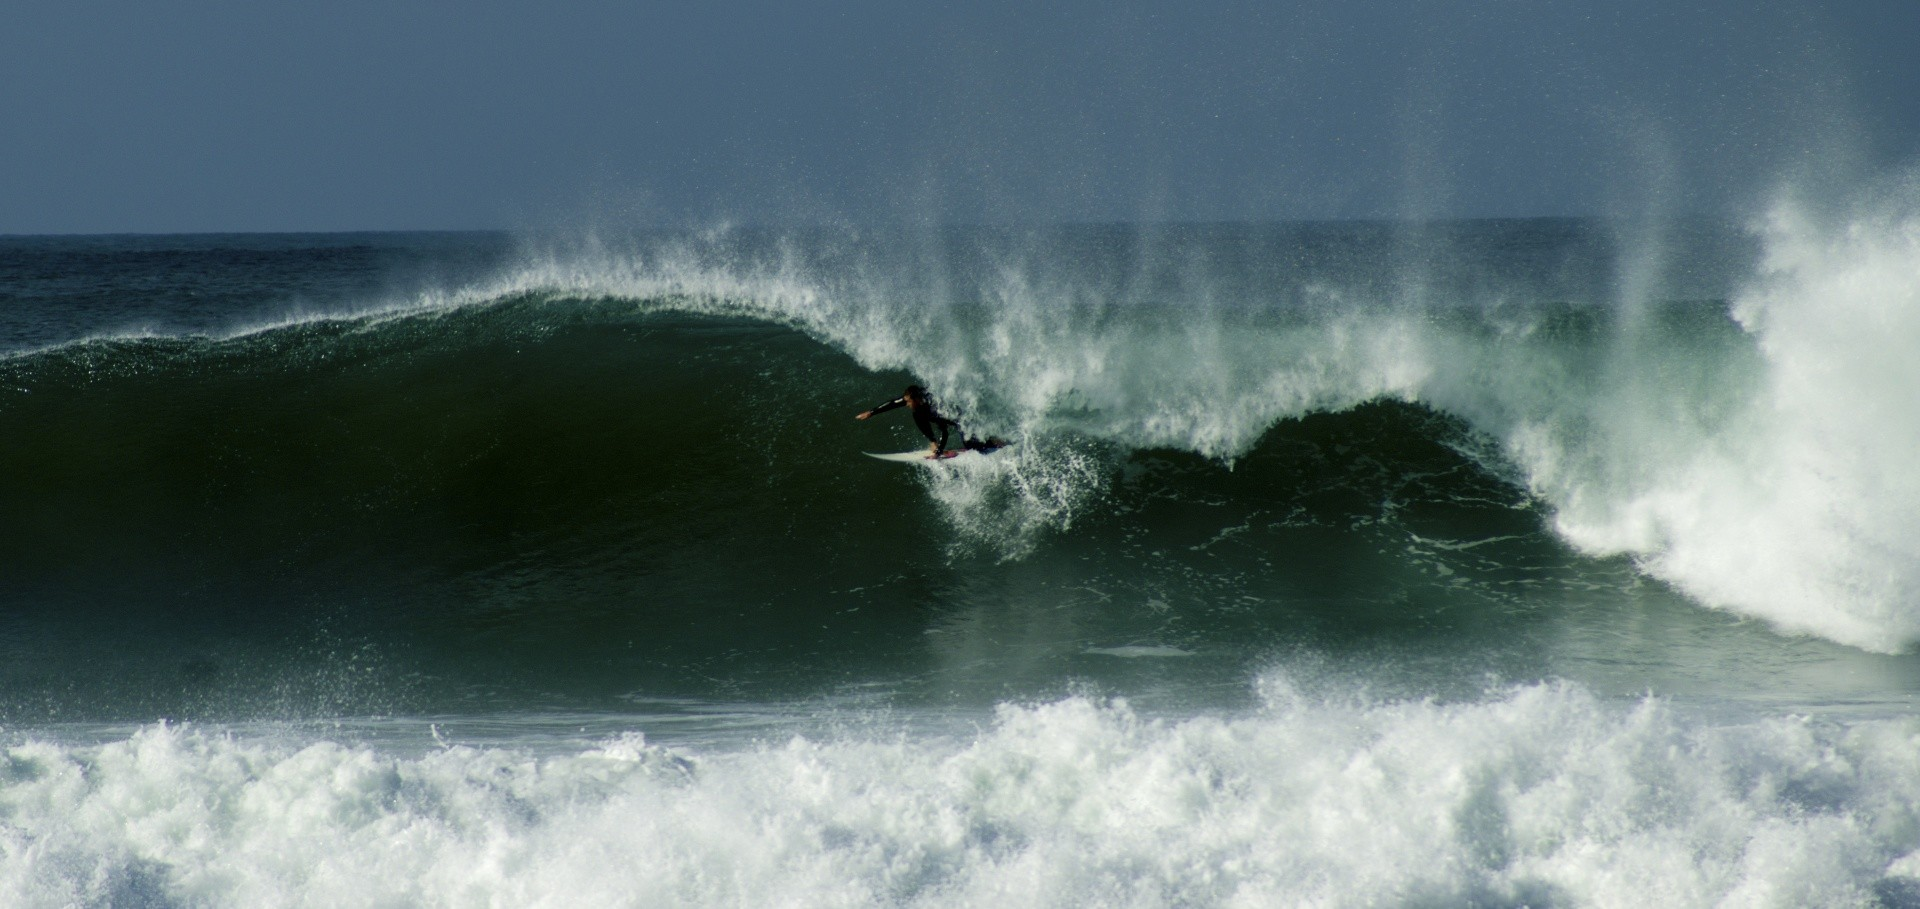 P L Machin - Rocker Extreme Sports Photography's photo of Newquay-  Little Fistral